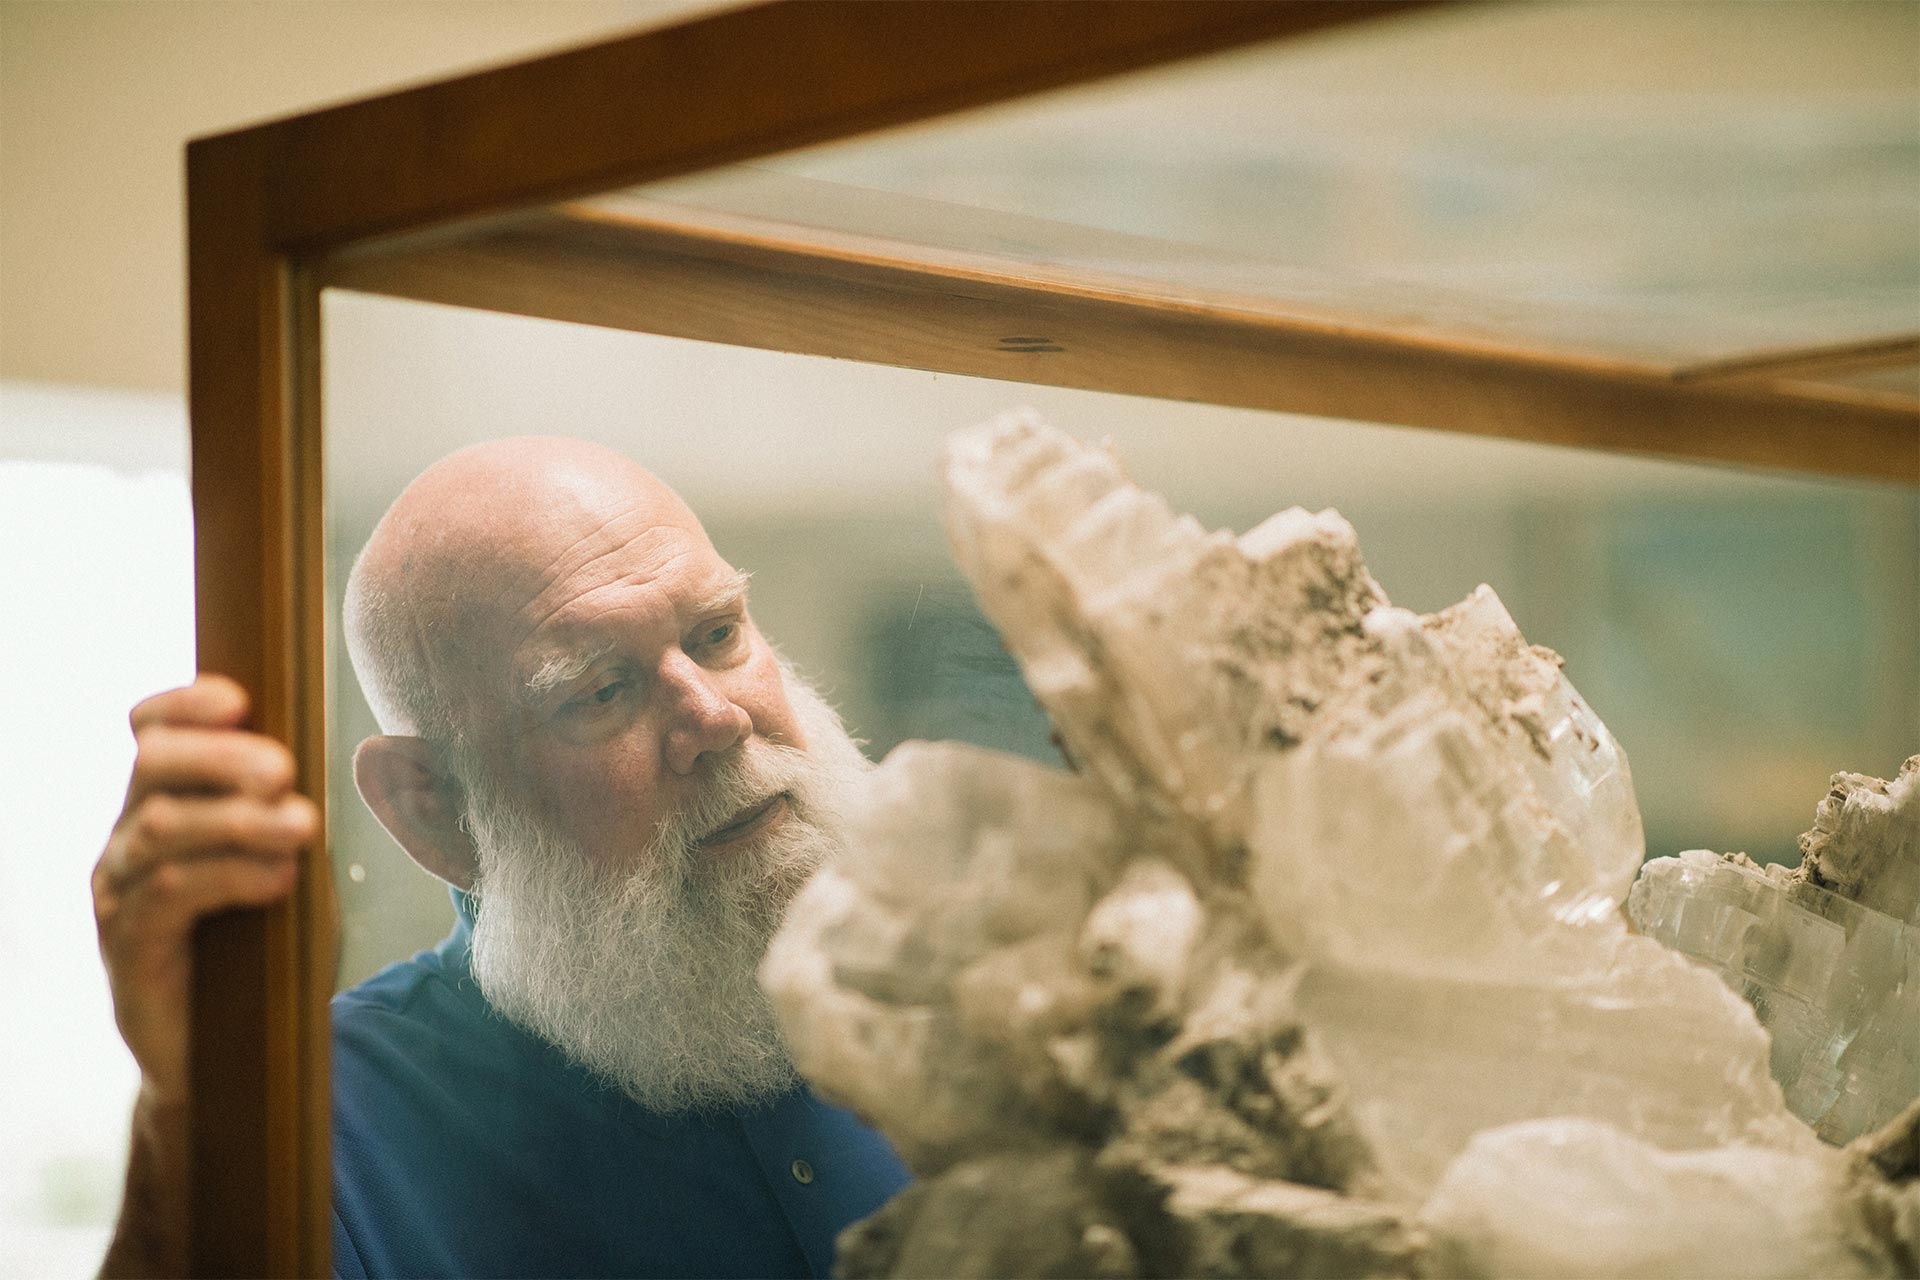 Patrick Gooding examining rock formation in display case